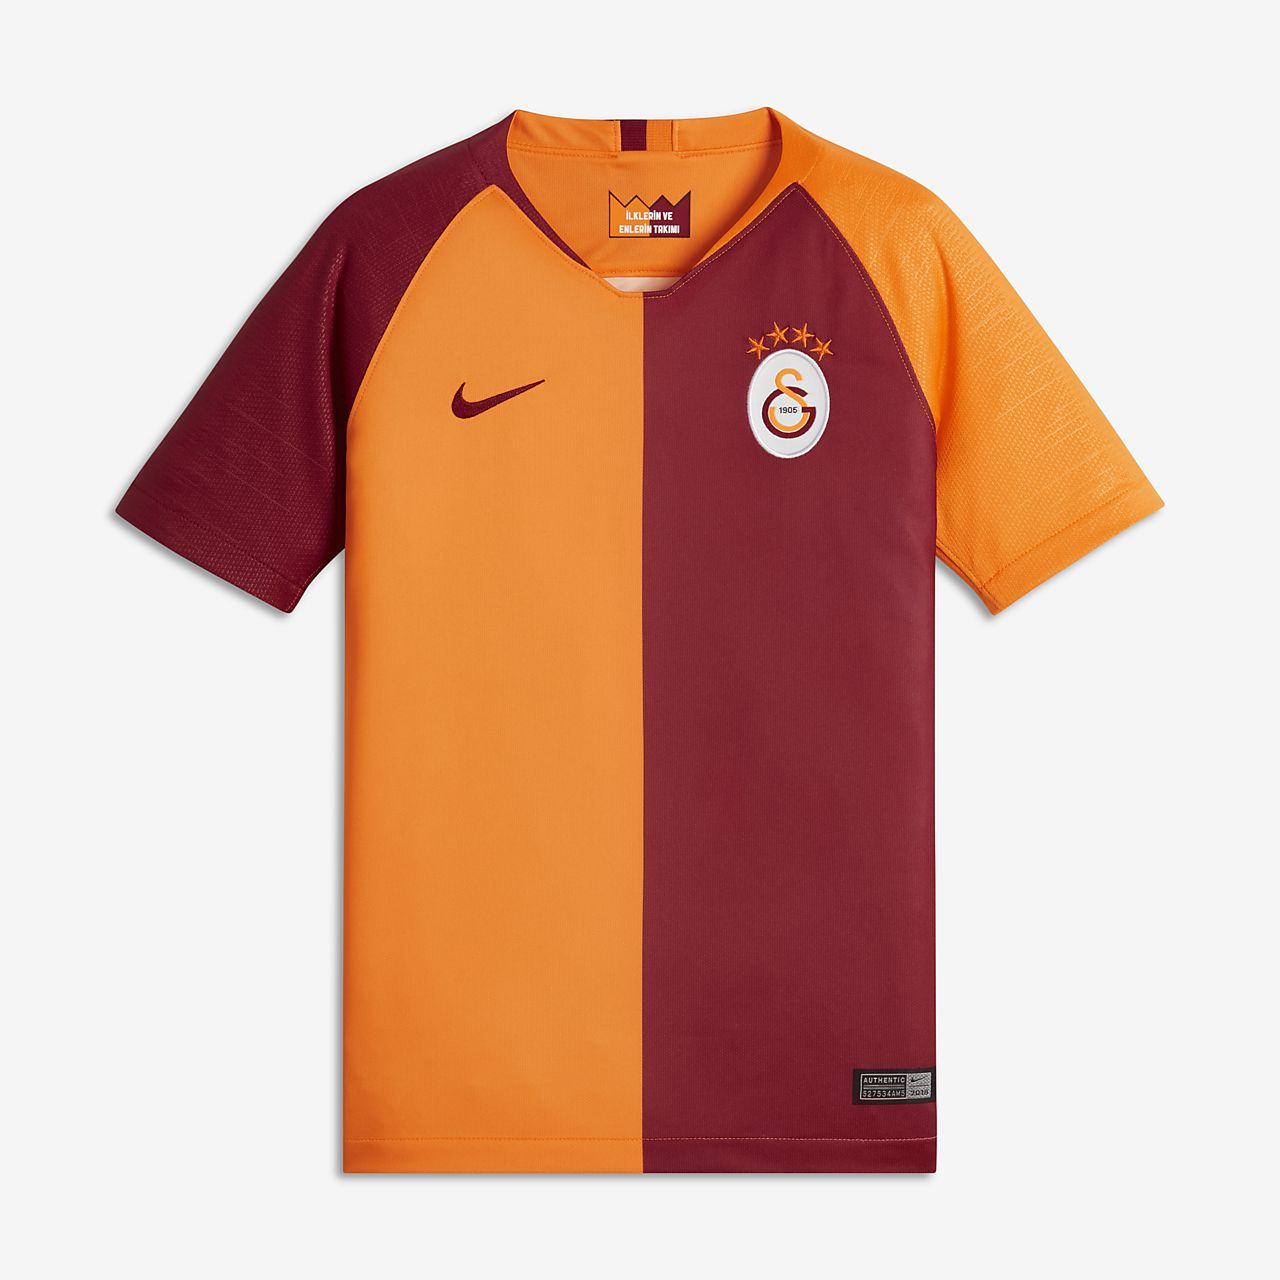 3fb107aa20e 2018 19 Galatasaray S.K. Stadium Home Older Kids  Football Shirt ...